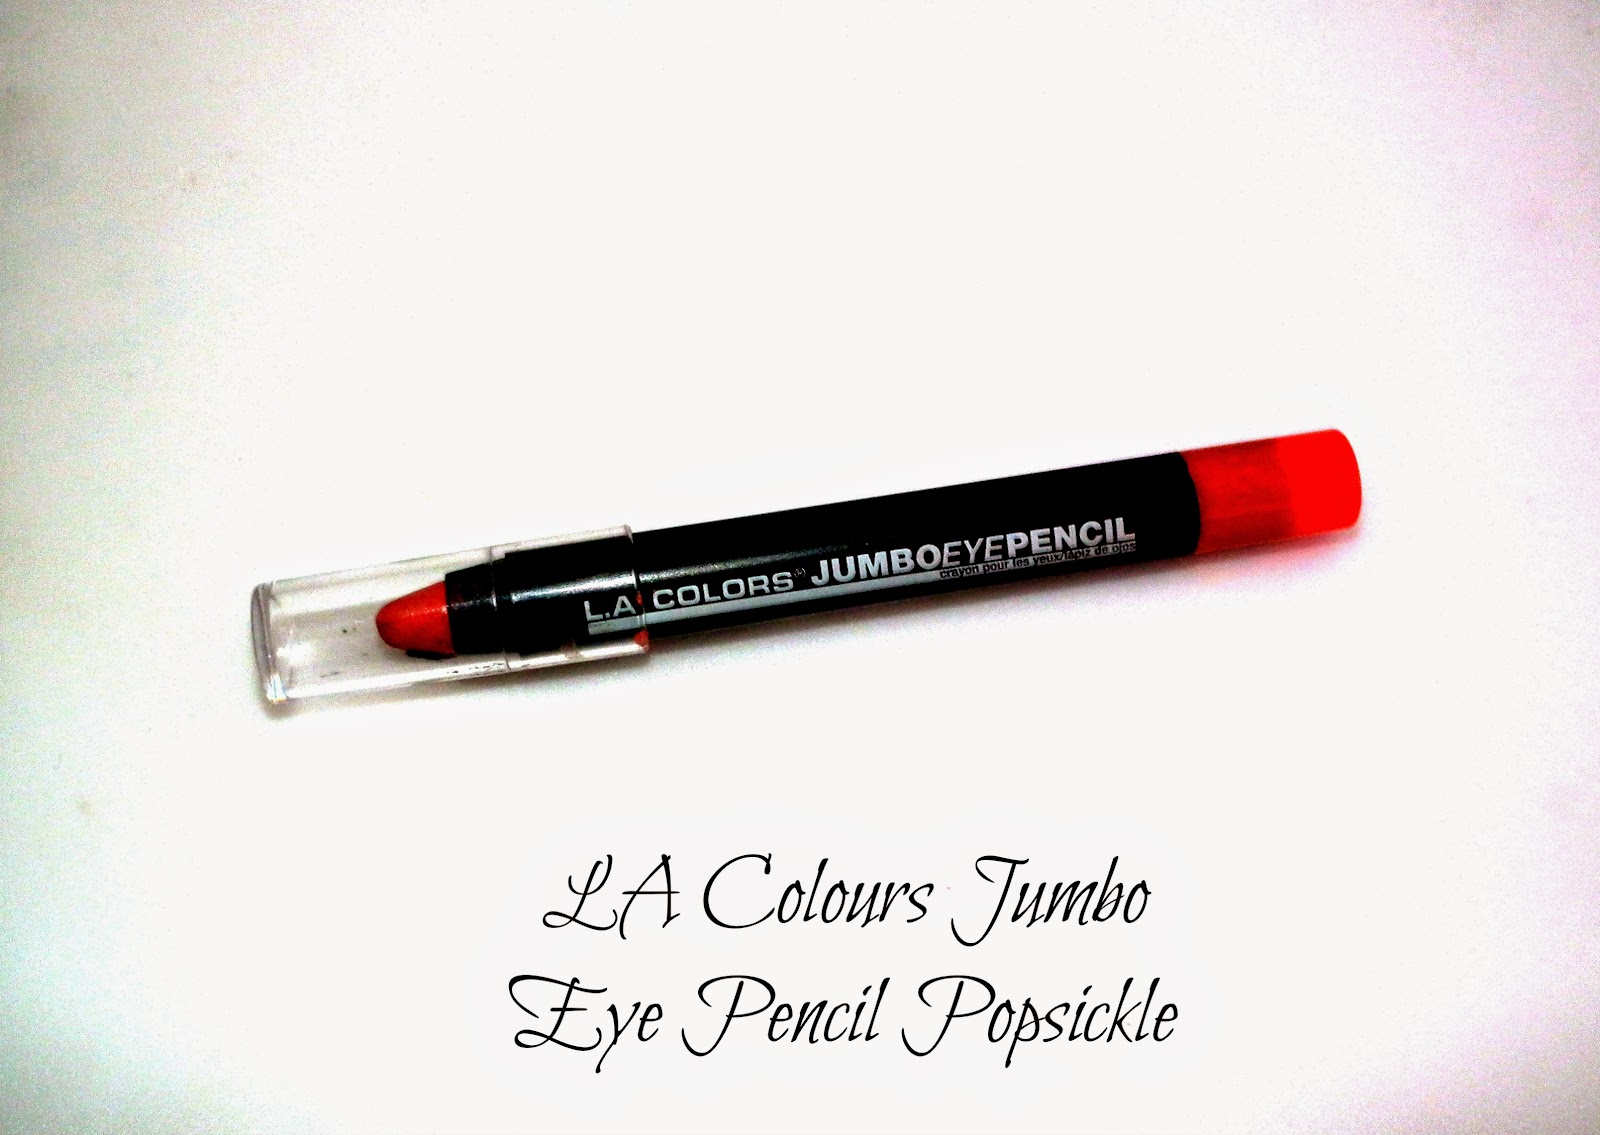 LA Colours Jumbo Eye Pencil Popsickle Swatches